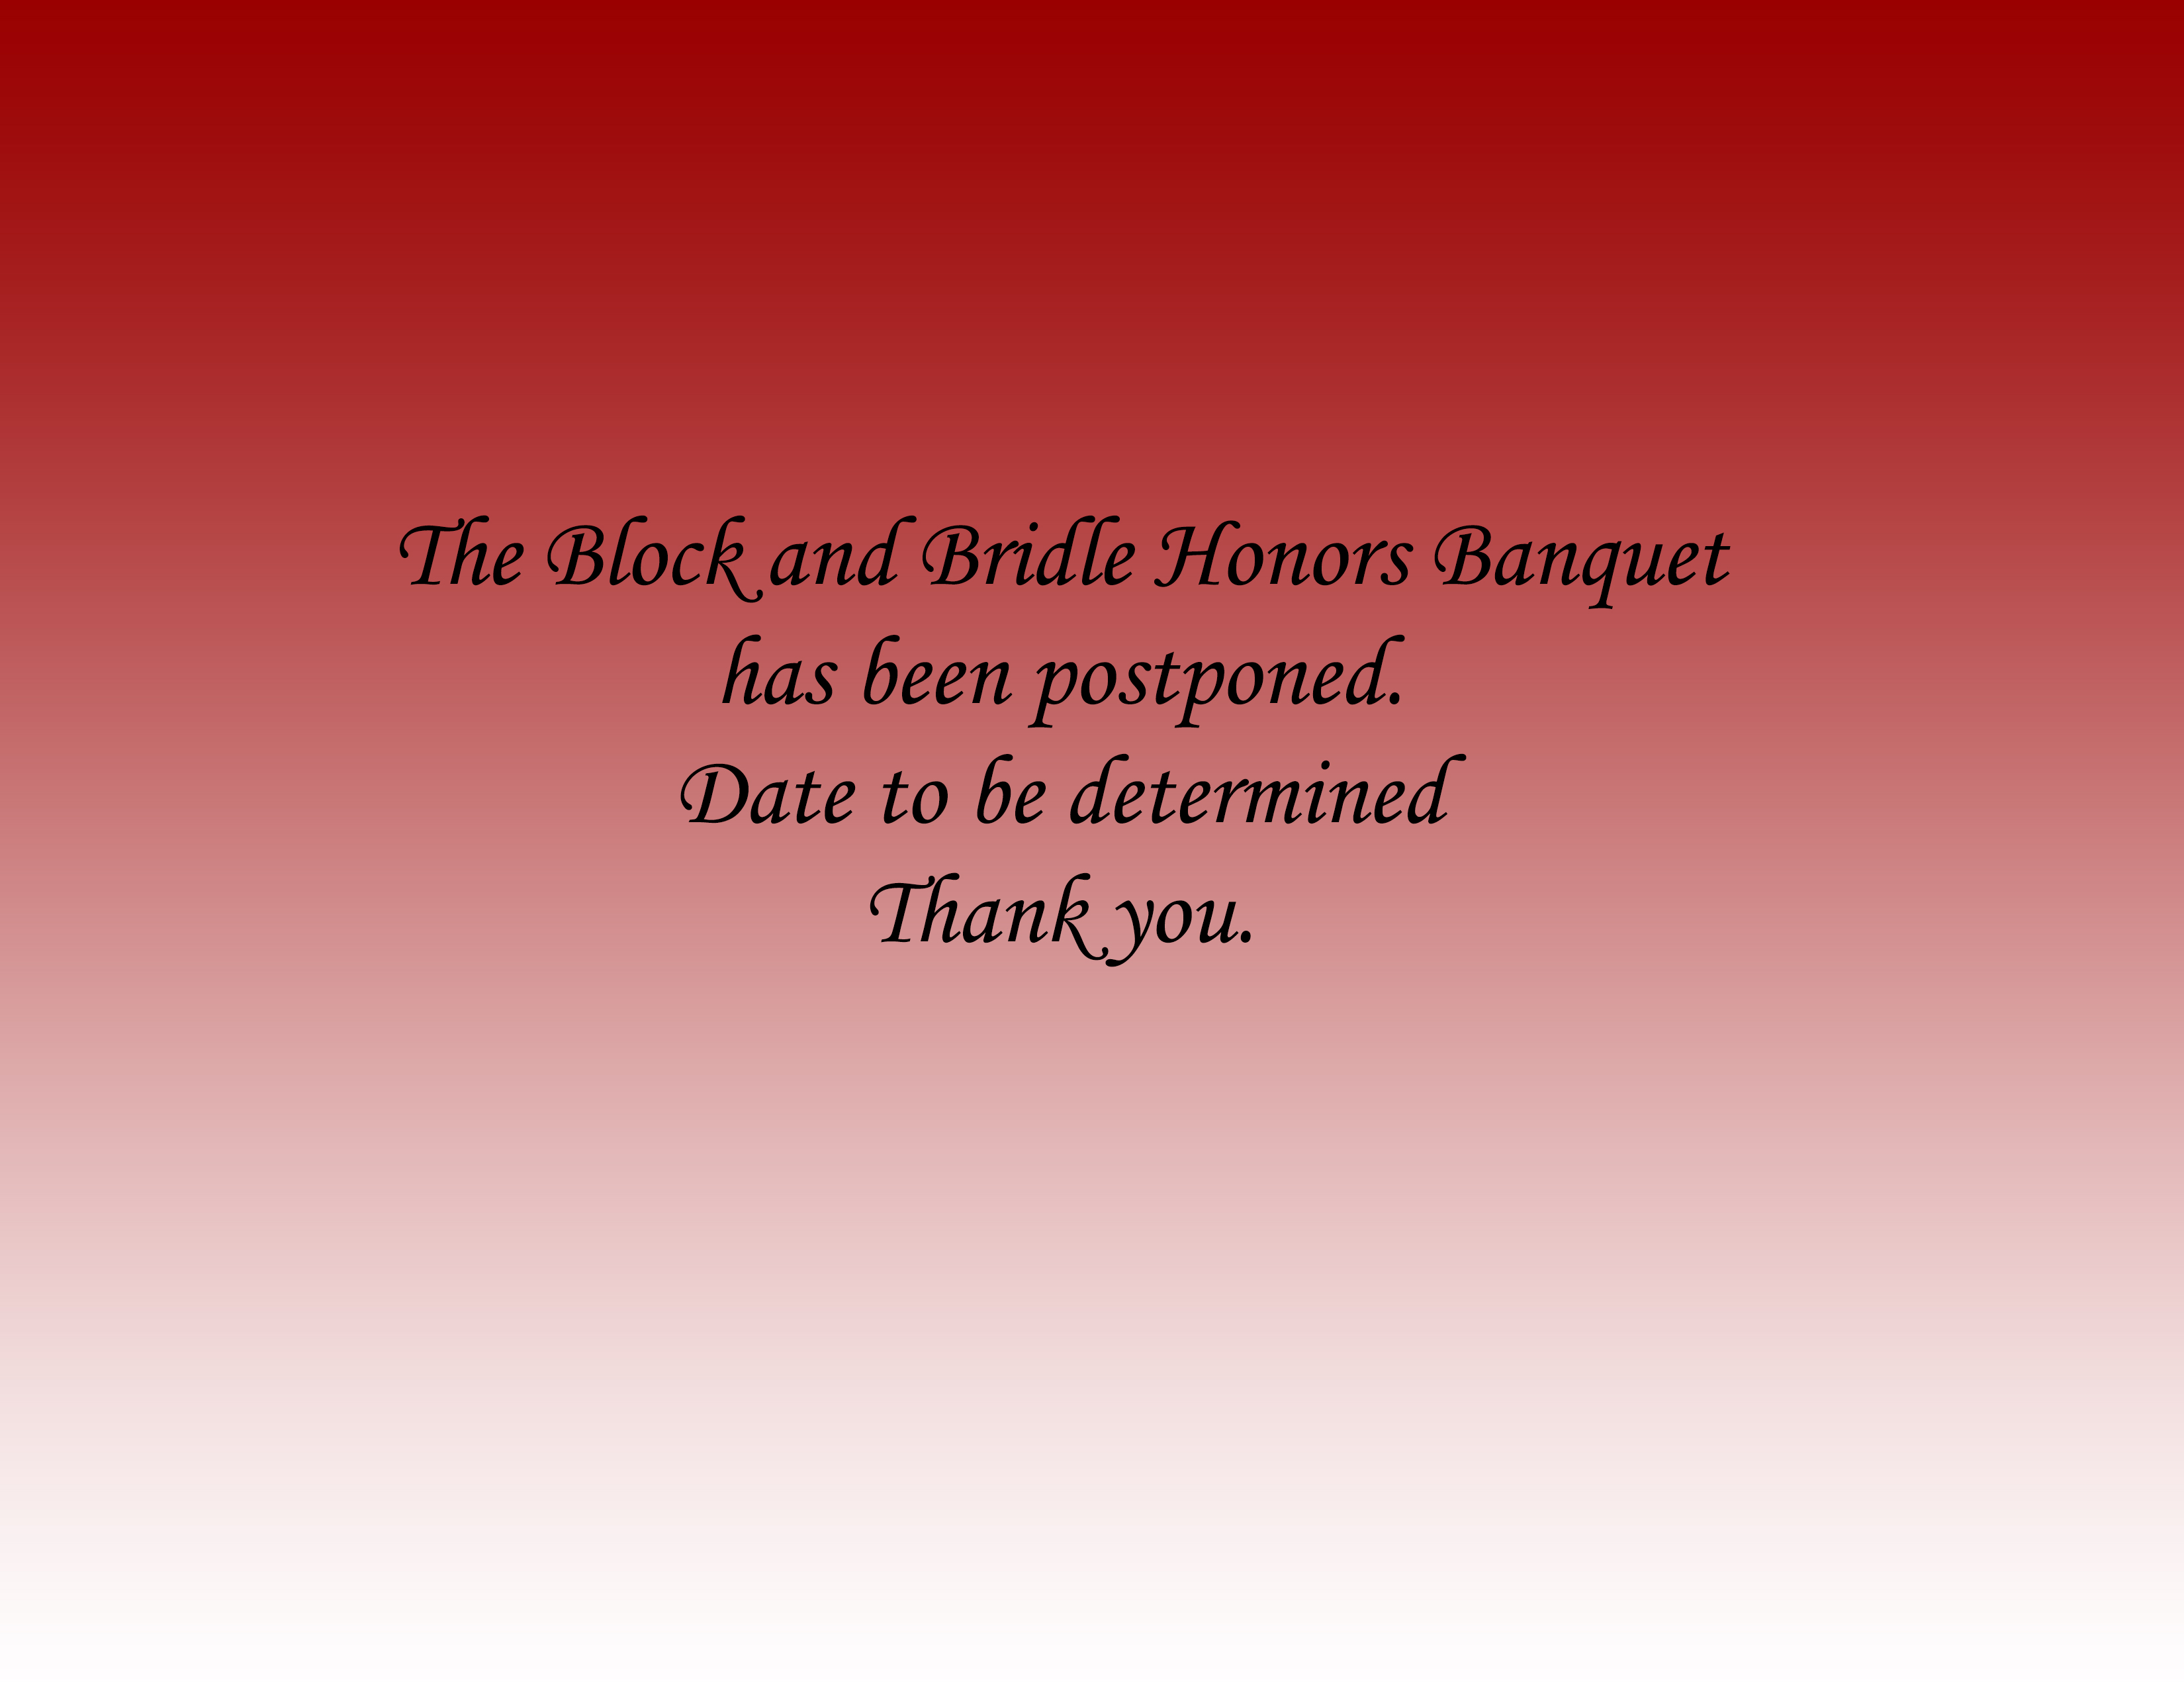 Block and Bridle Honors Banquet postponed